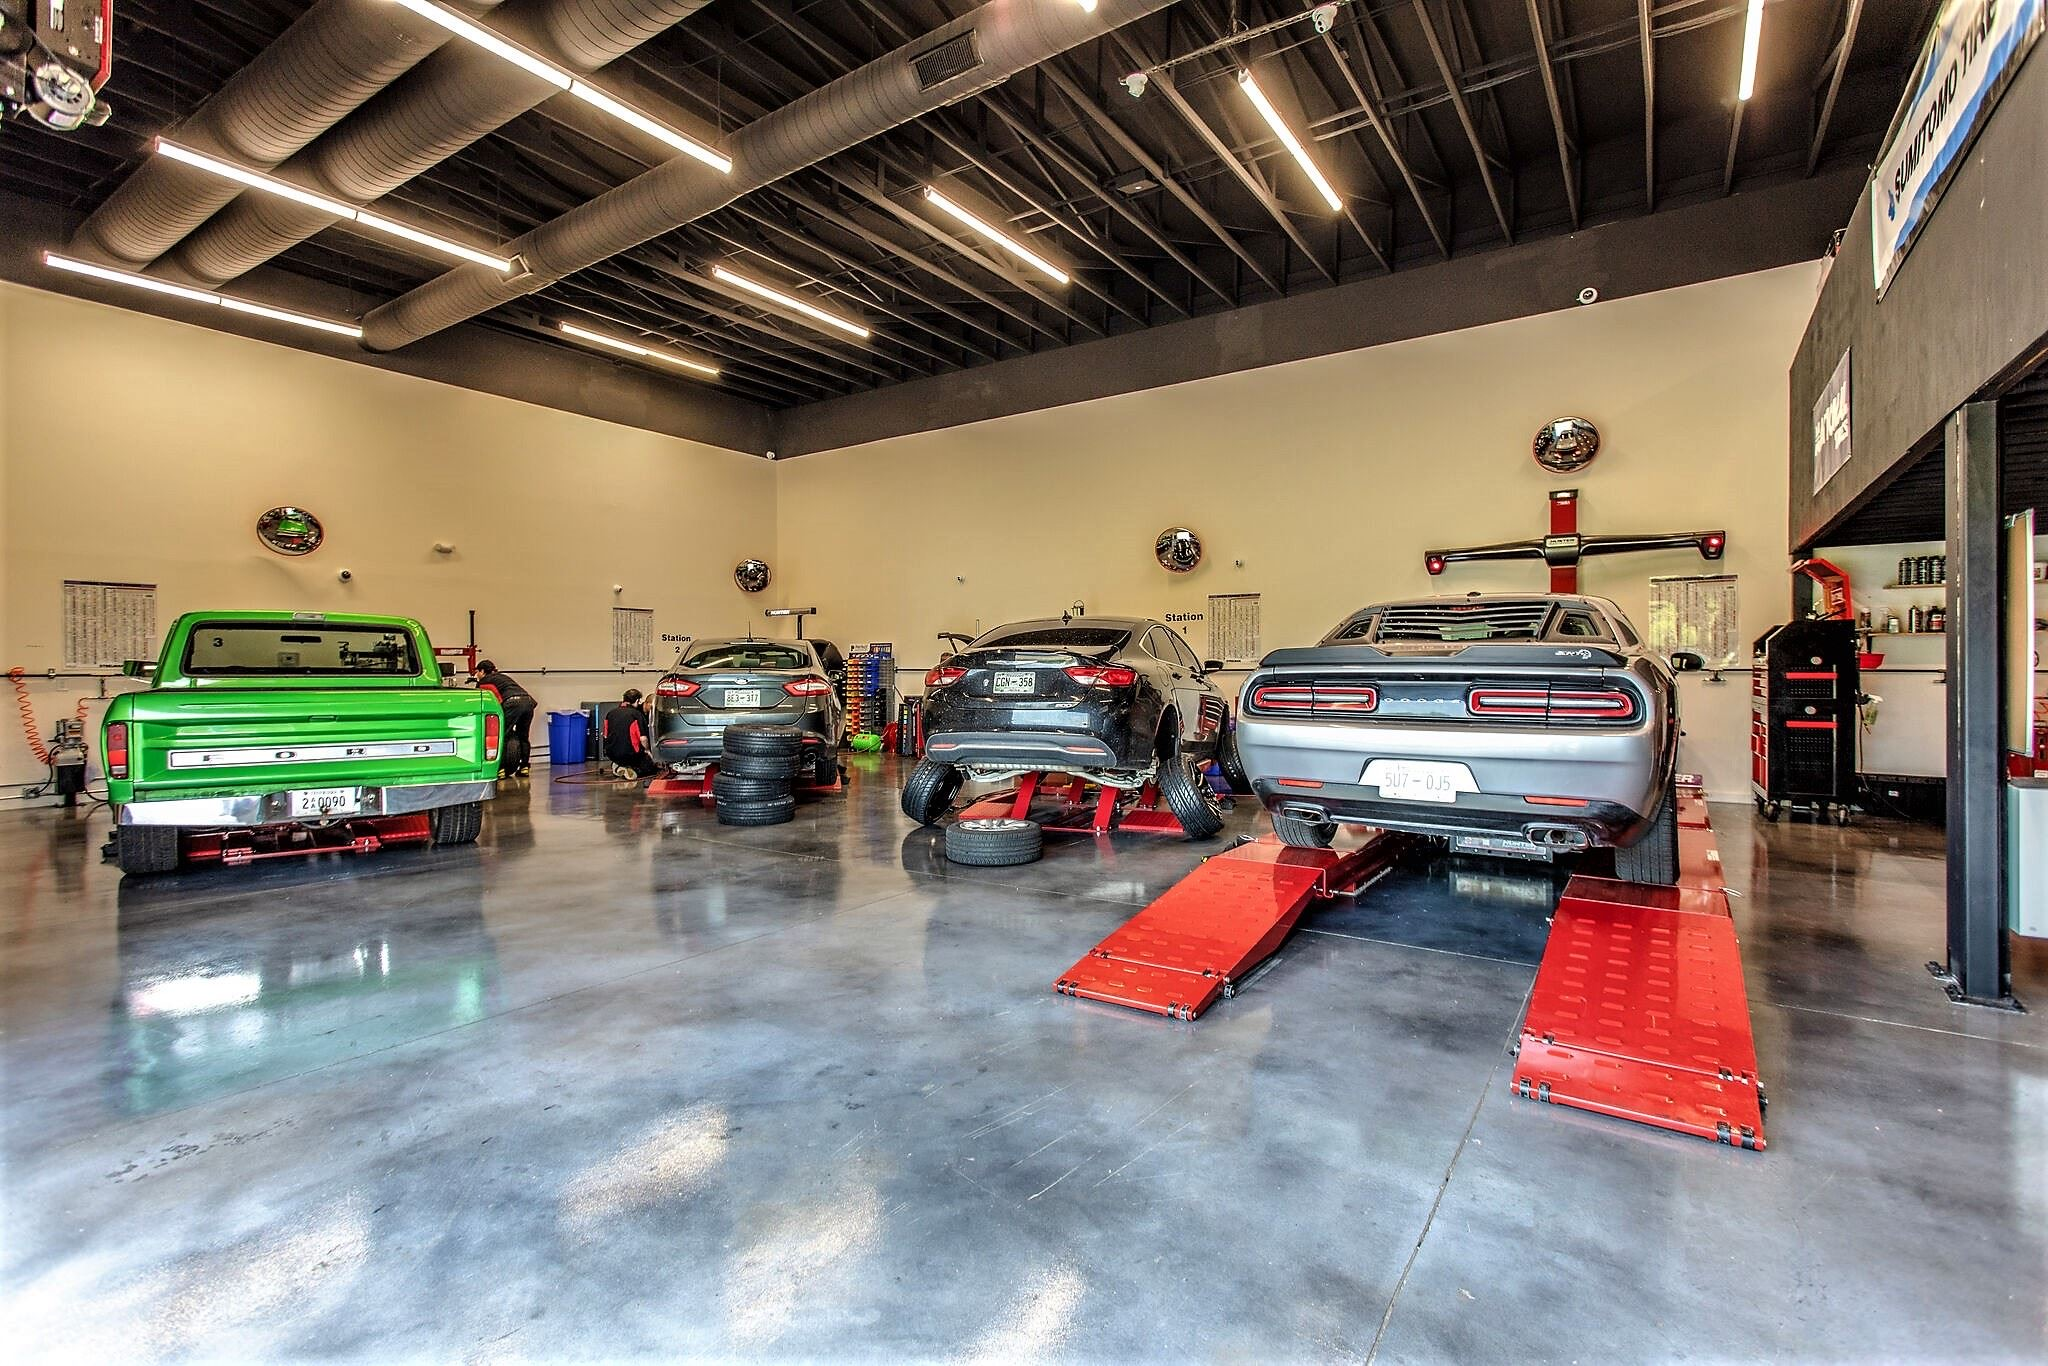 tires shop in nashville TN, car battery replacement nashville, wheel alignment services nashville, tires repair shop nashville, tires change nashville tn, tire replacement, tire rotation in nashville, tire services in nashville tn, wheel balancing nashville tn, tire pressure monitoring system nashville tn, car wheels nashville tn, tire one nashville